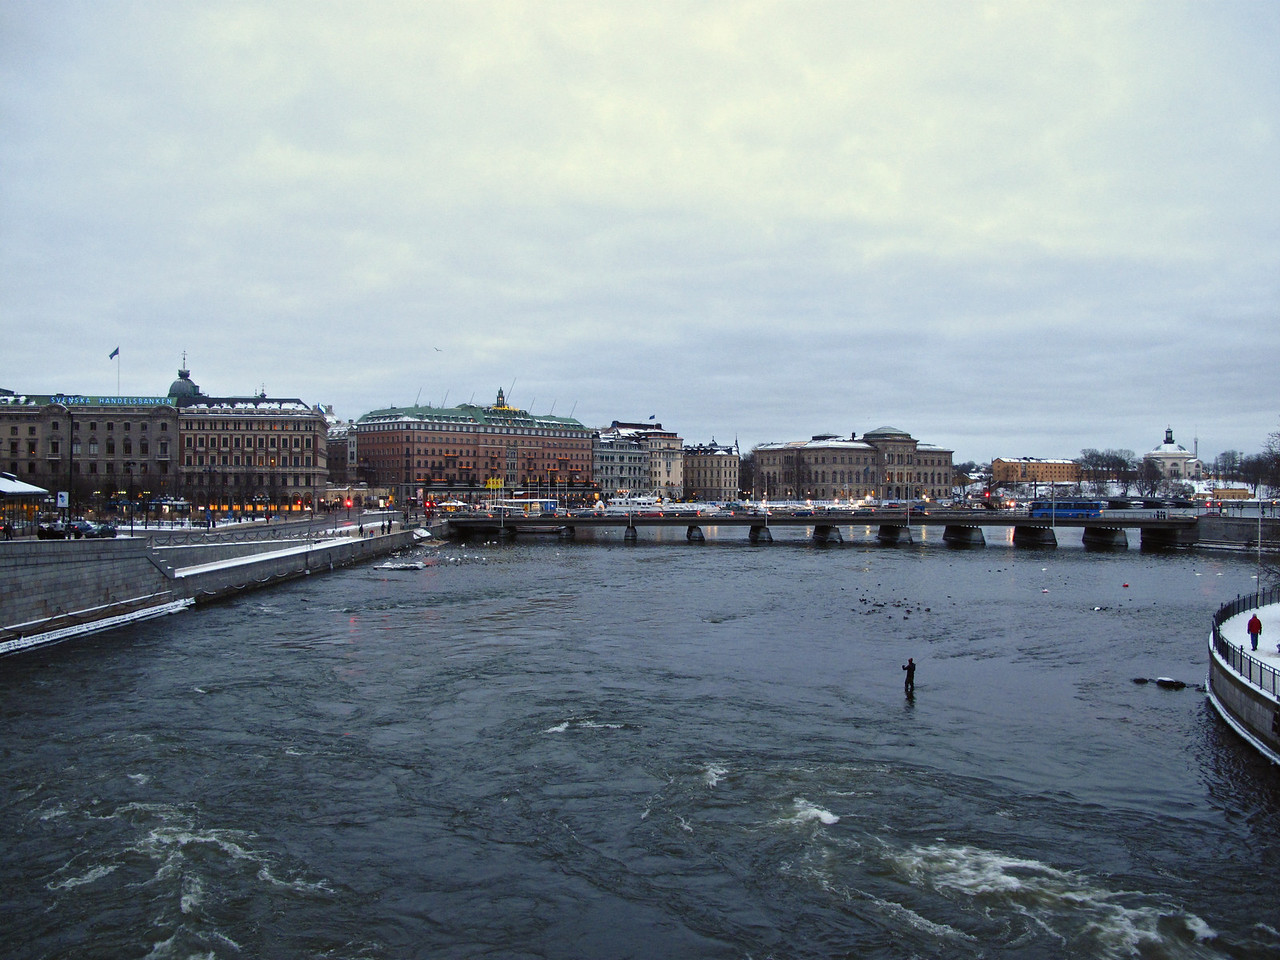 The city of Stockholm is spread over 14 different islands.  There are many bridges and water crossings throughout the city.  Here, a fly fisherman takes a chance in very icy waters.